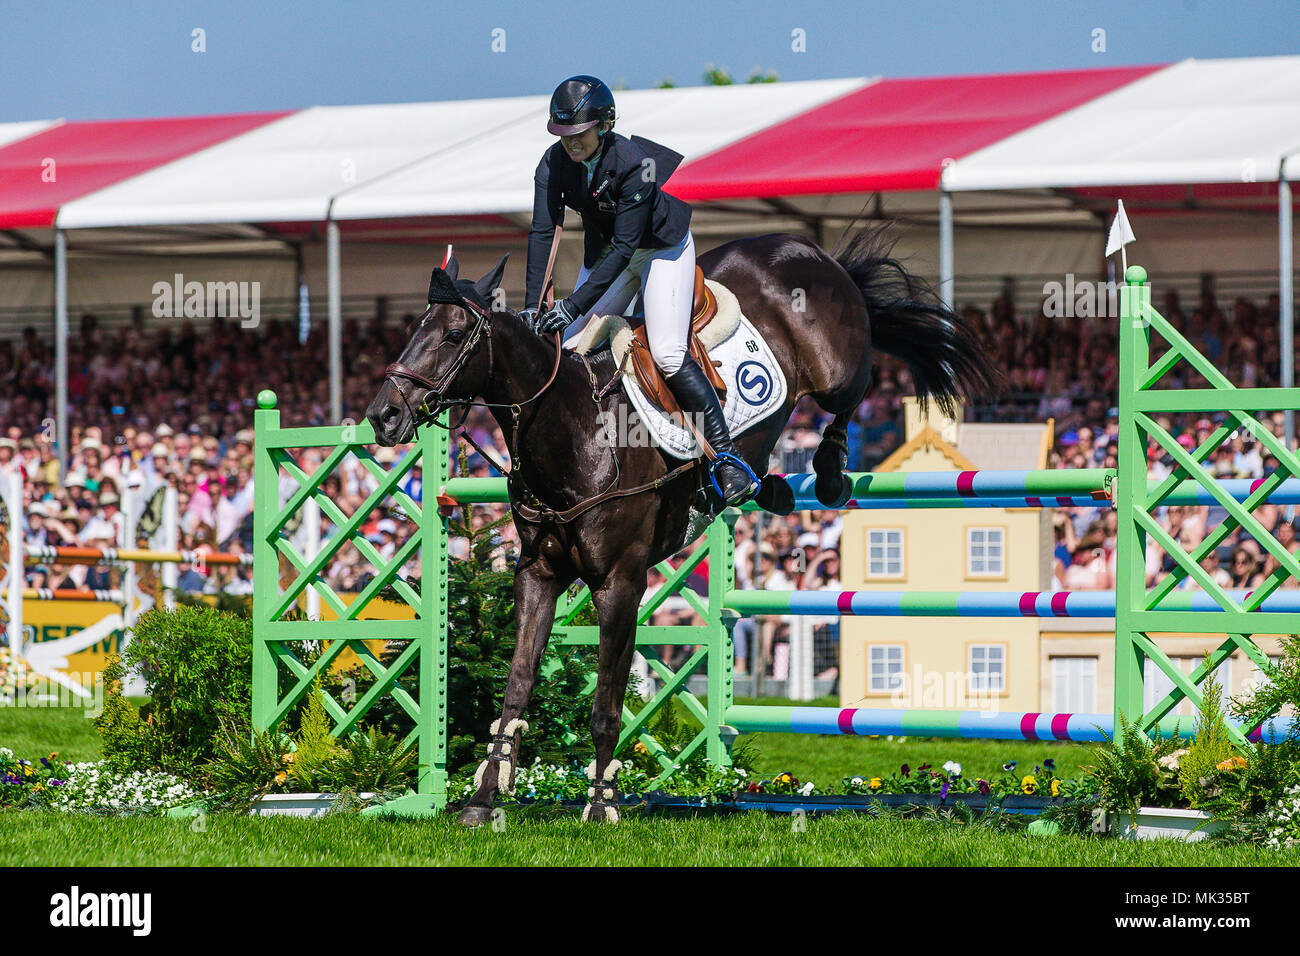 Gloucestershire, UK. 6th May, 2018. Jonelle Price (NZL) clears the last fence in the show jumping phase of the Mitsubishi Motors Badminton Horse Trials on her mount Classic Moet following her storming round of Cross Country yesterday. The smile says it all Jonelle who is married to fellow New Zealand three day eventer Tim Price had her first baby in August 2017. The couple are based near Marlborough in Wiltshire Credit: David Betteridge/Alamy Live News - Stock Image